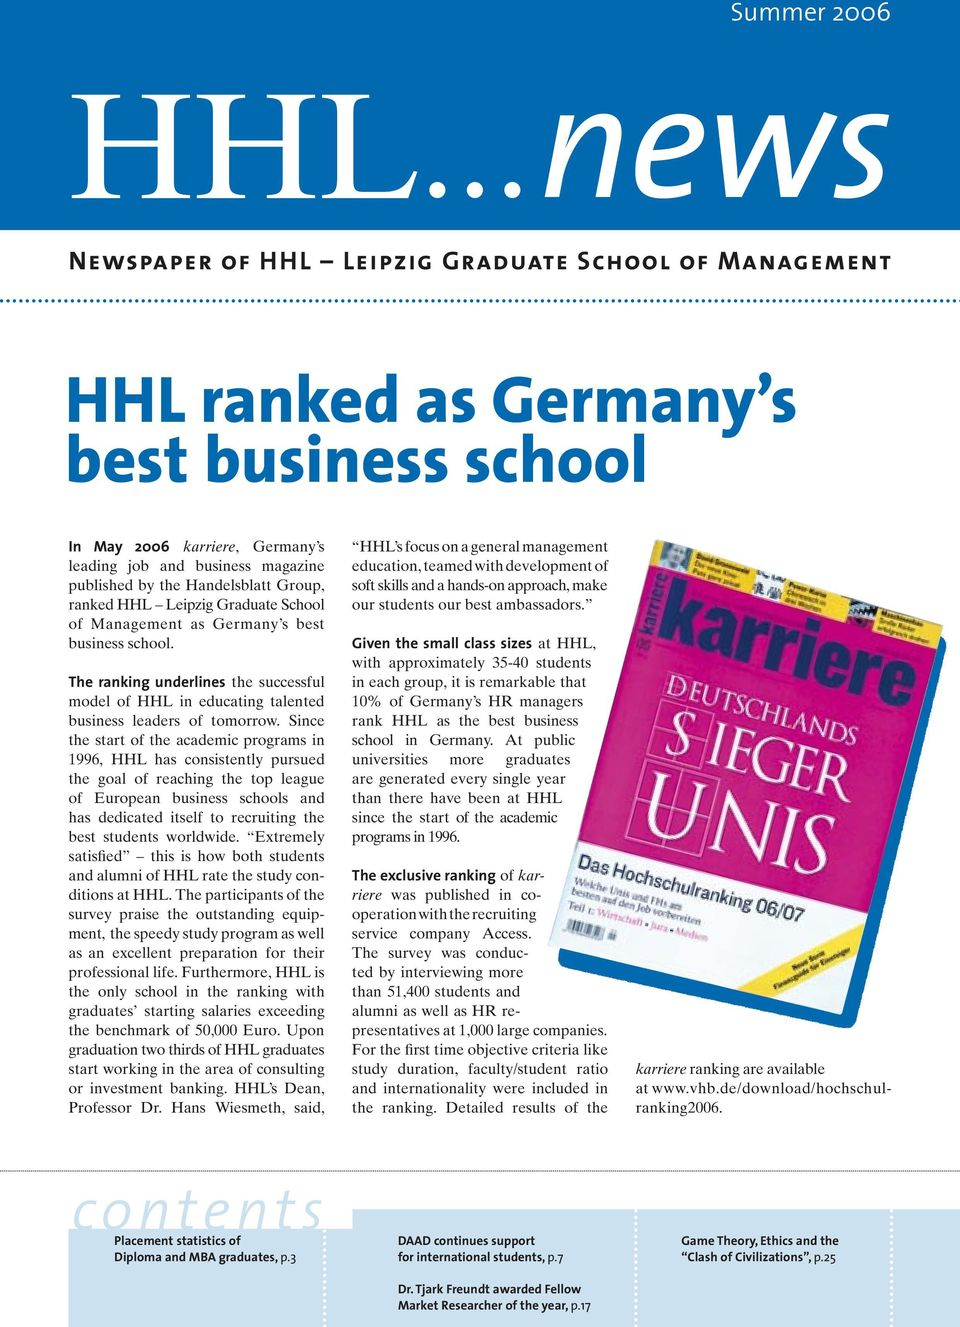 The ranking underlines the successful model of HHL in educating talented business leaders of tomorrow.